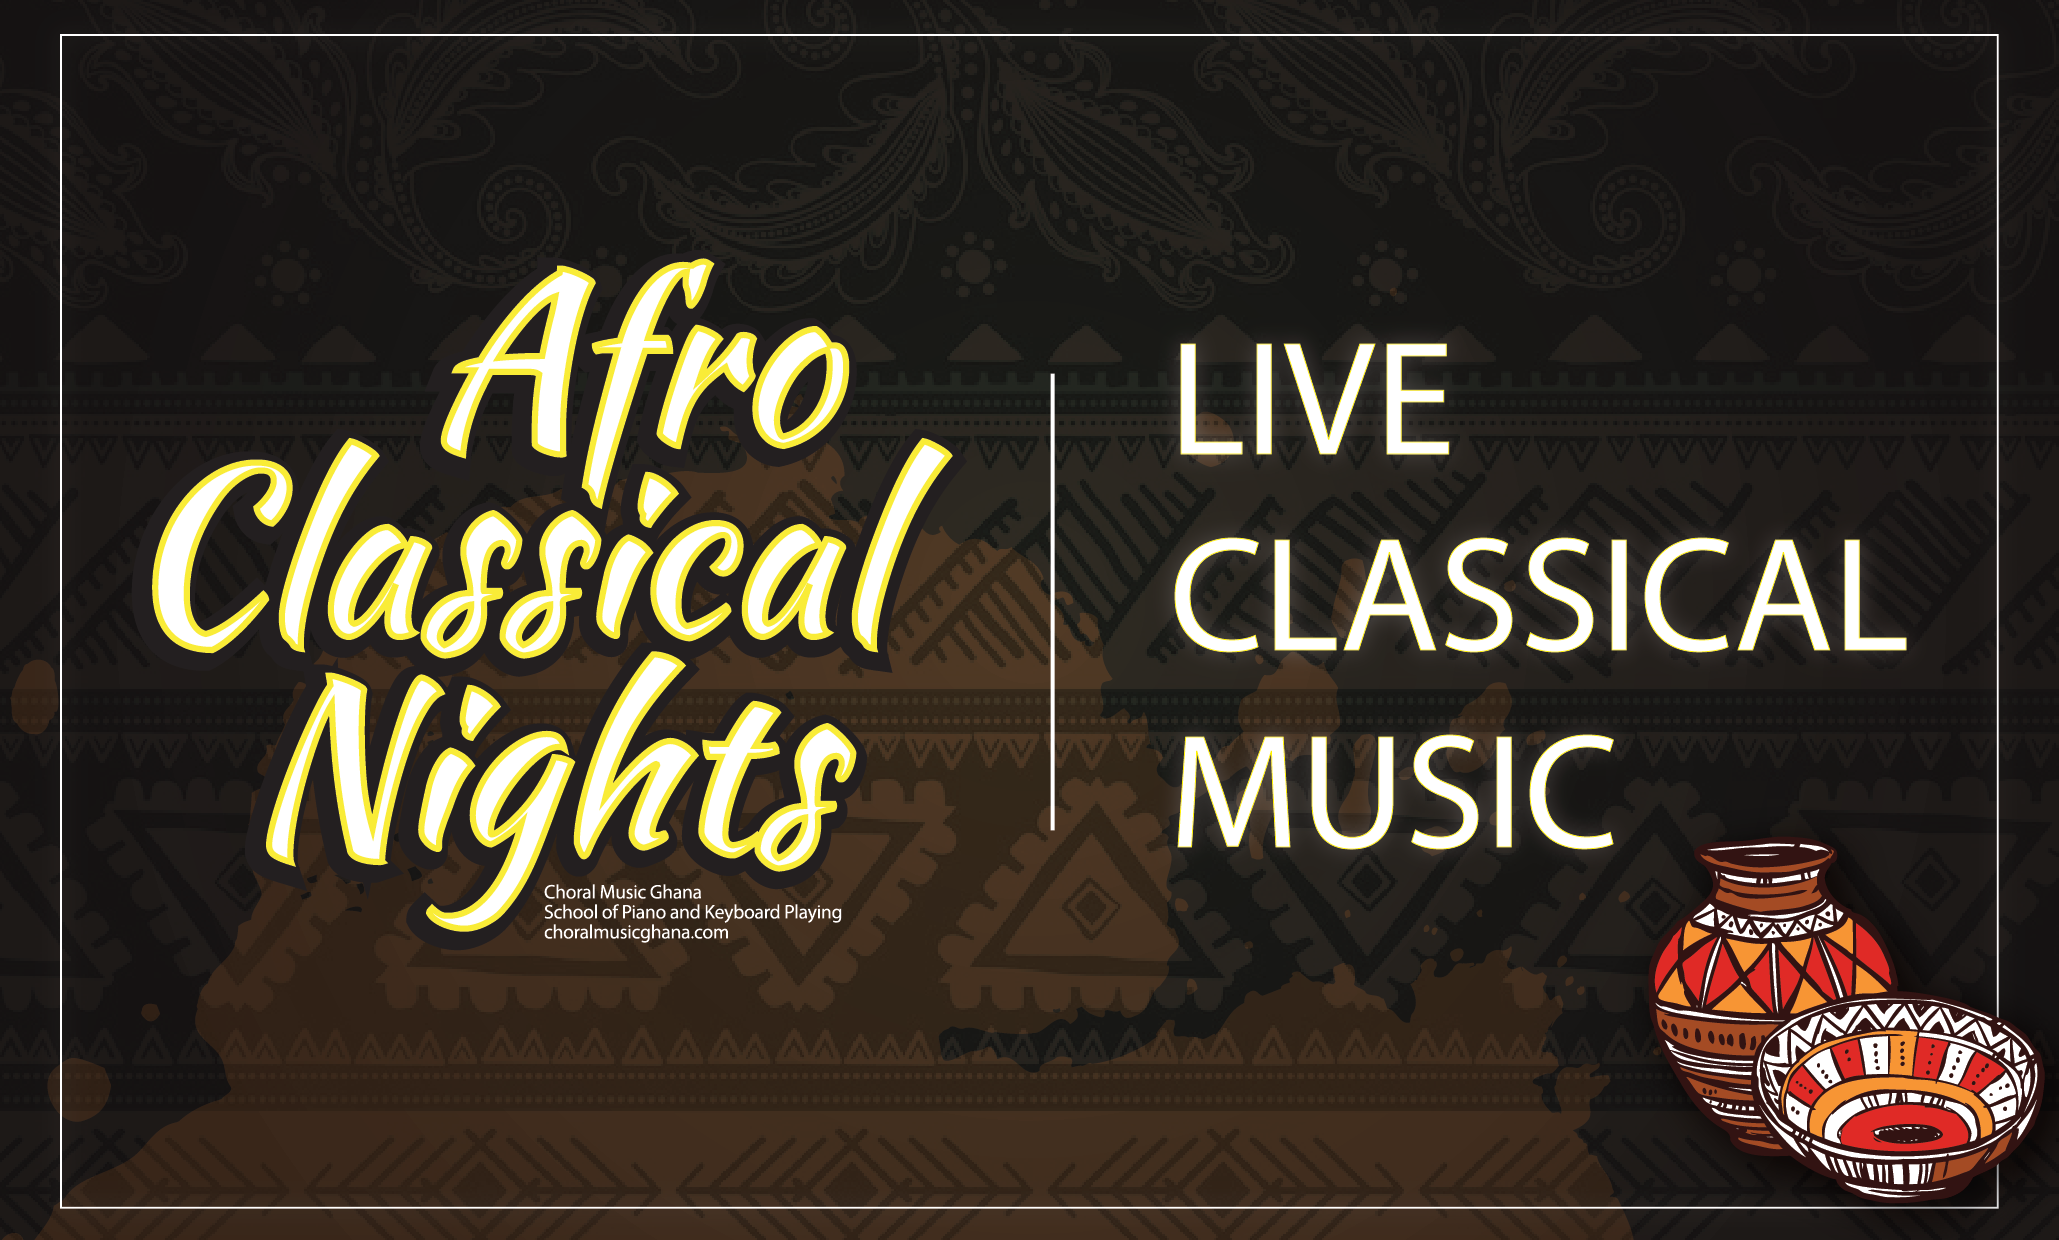 Afro Classical Nights | Live Classical Music The flagship event of Choral Music Ghana provides a platform for Ghanaian classical musicians to interact with audiences and perform their best pieces in a relaxed, fun, afropolitan lounge.